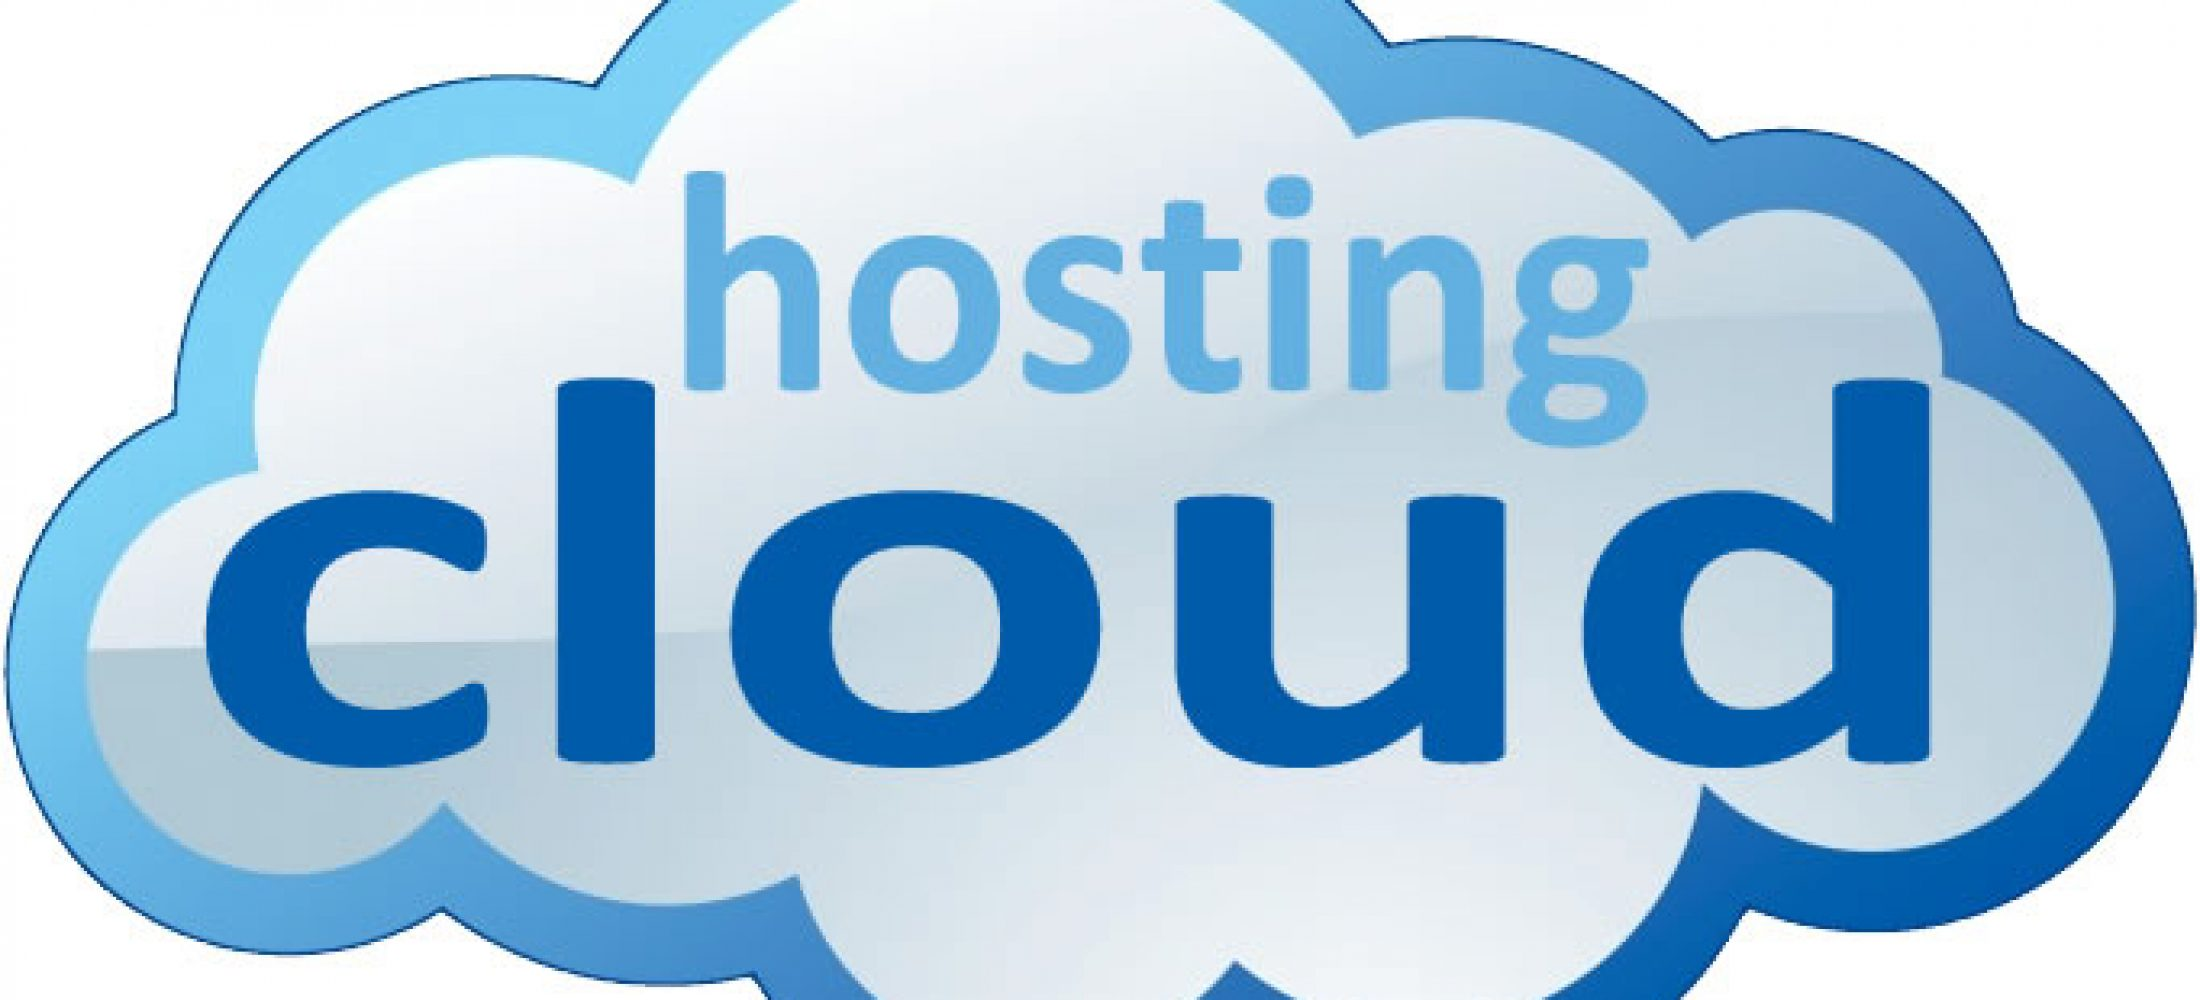 Cloud Hosting: It's the Future